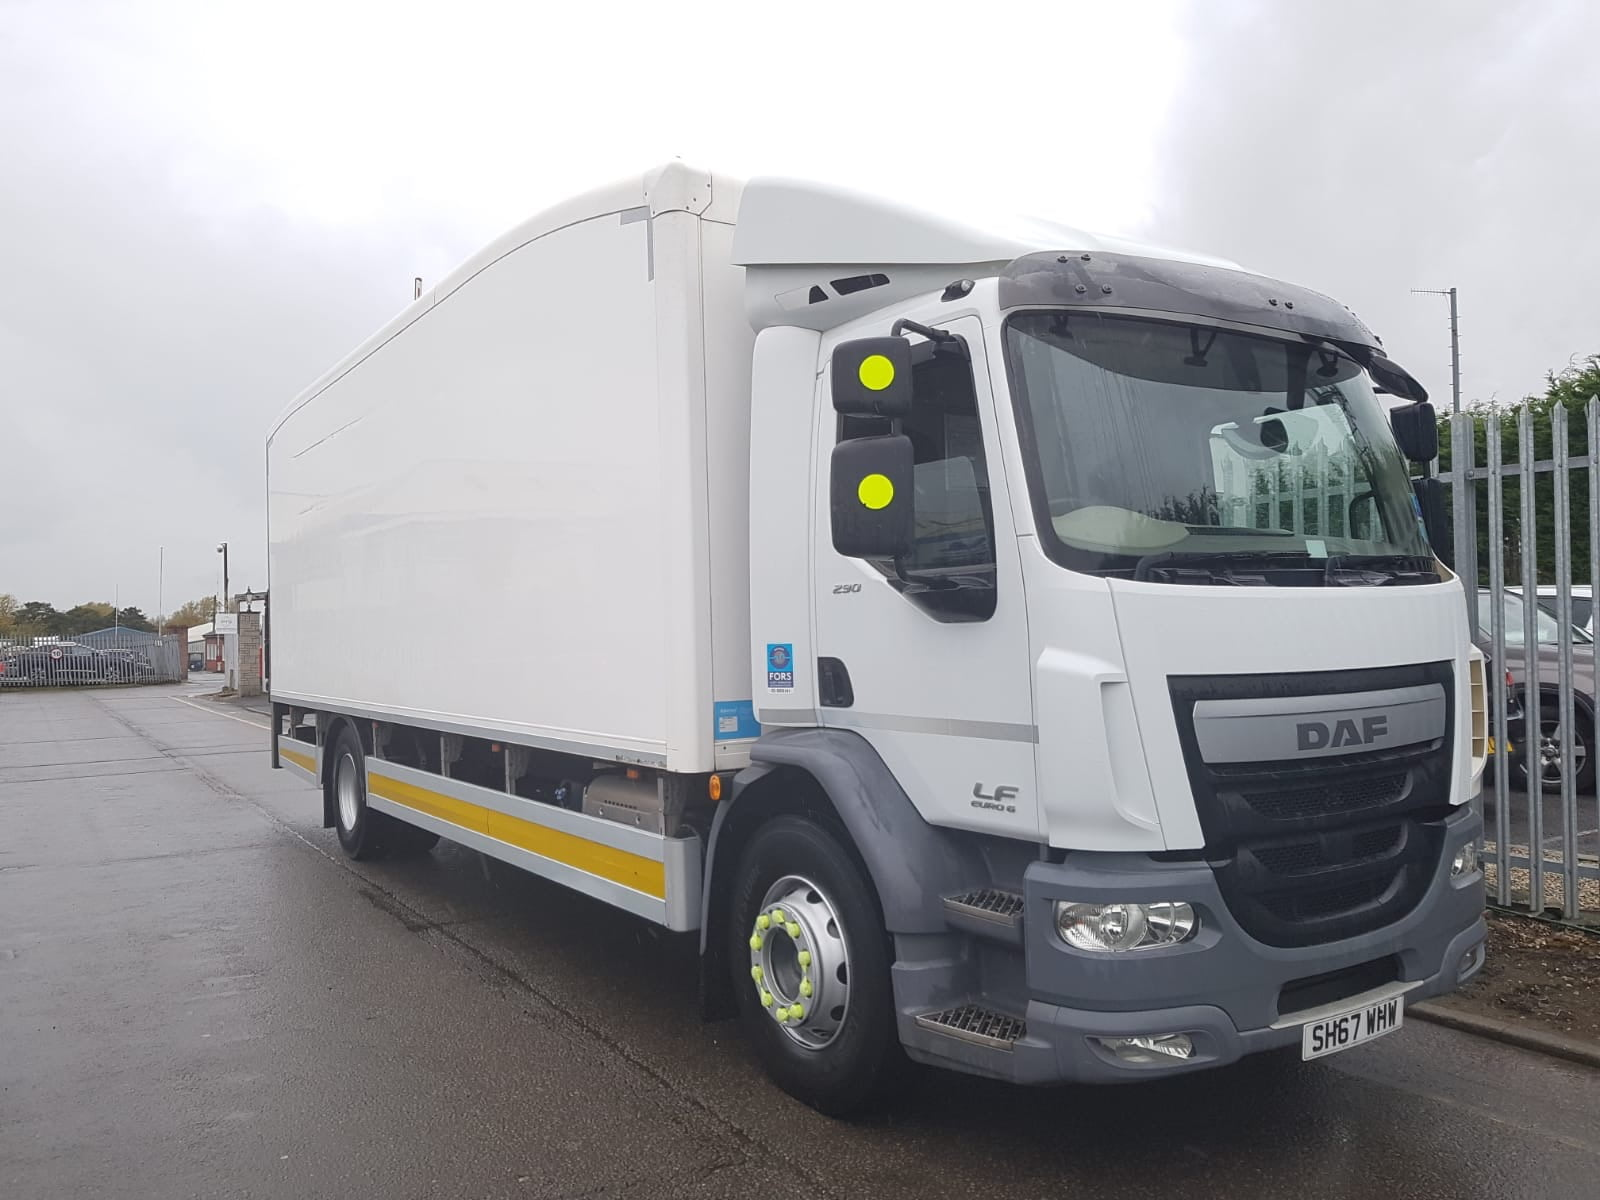 2017 (67) DAF LF 290 Fridge Rigid. 18 Tonne, Dhollandia Column Tailift (1500kg Capacity), Thermoking Fridge Engine, Euro 6, Automatic Gearbox, Day Cab, Solomon Body, Roller Shutter Rear Doors, Near Side Door in Body, Resin Floor, 2 x Loadlock Rails, Reverse Camera, Low Mileage, Choice & Warranty Available.